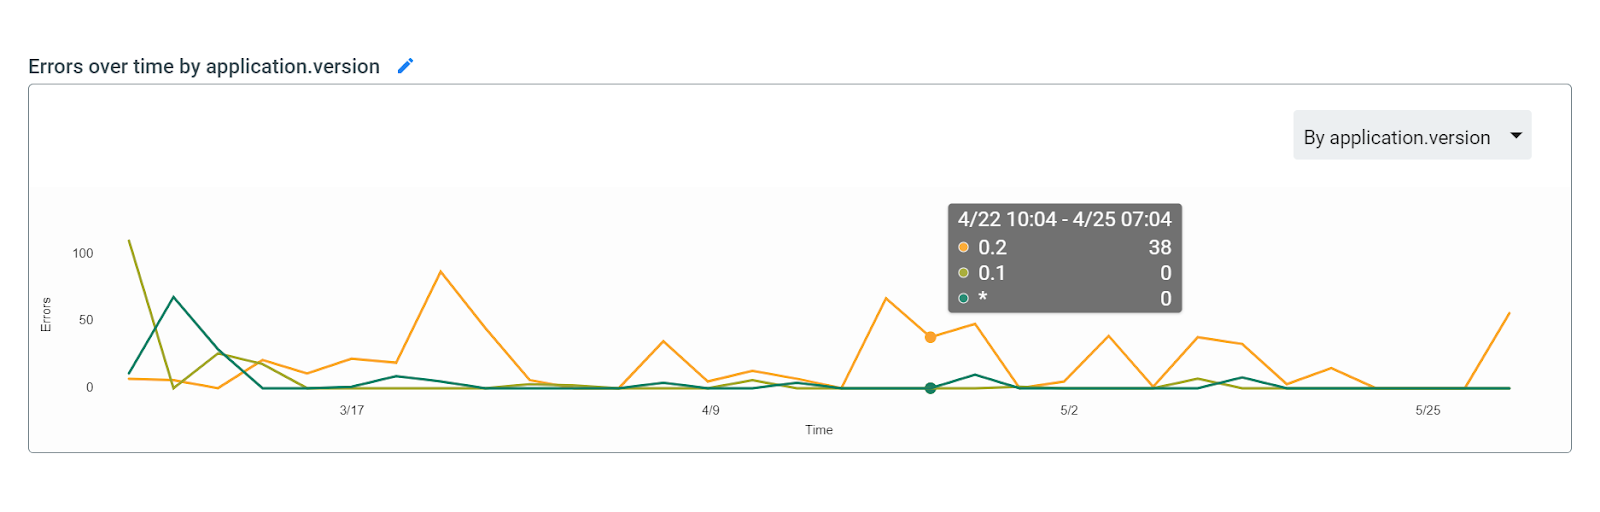 Visualizes your project's error count, broken out by application version